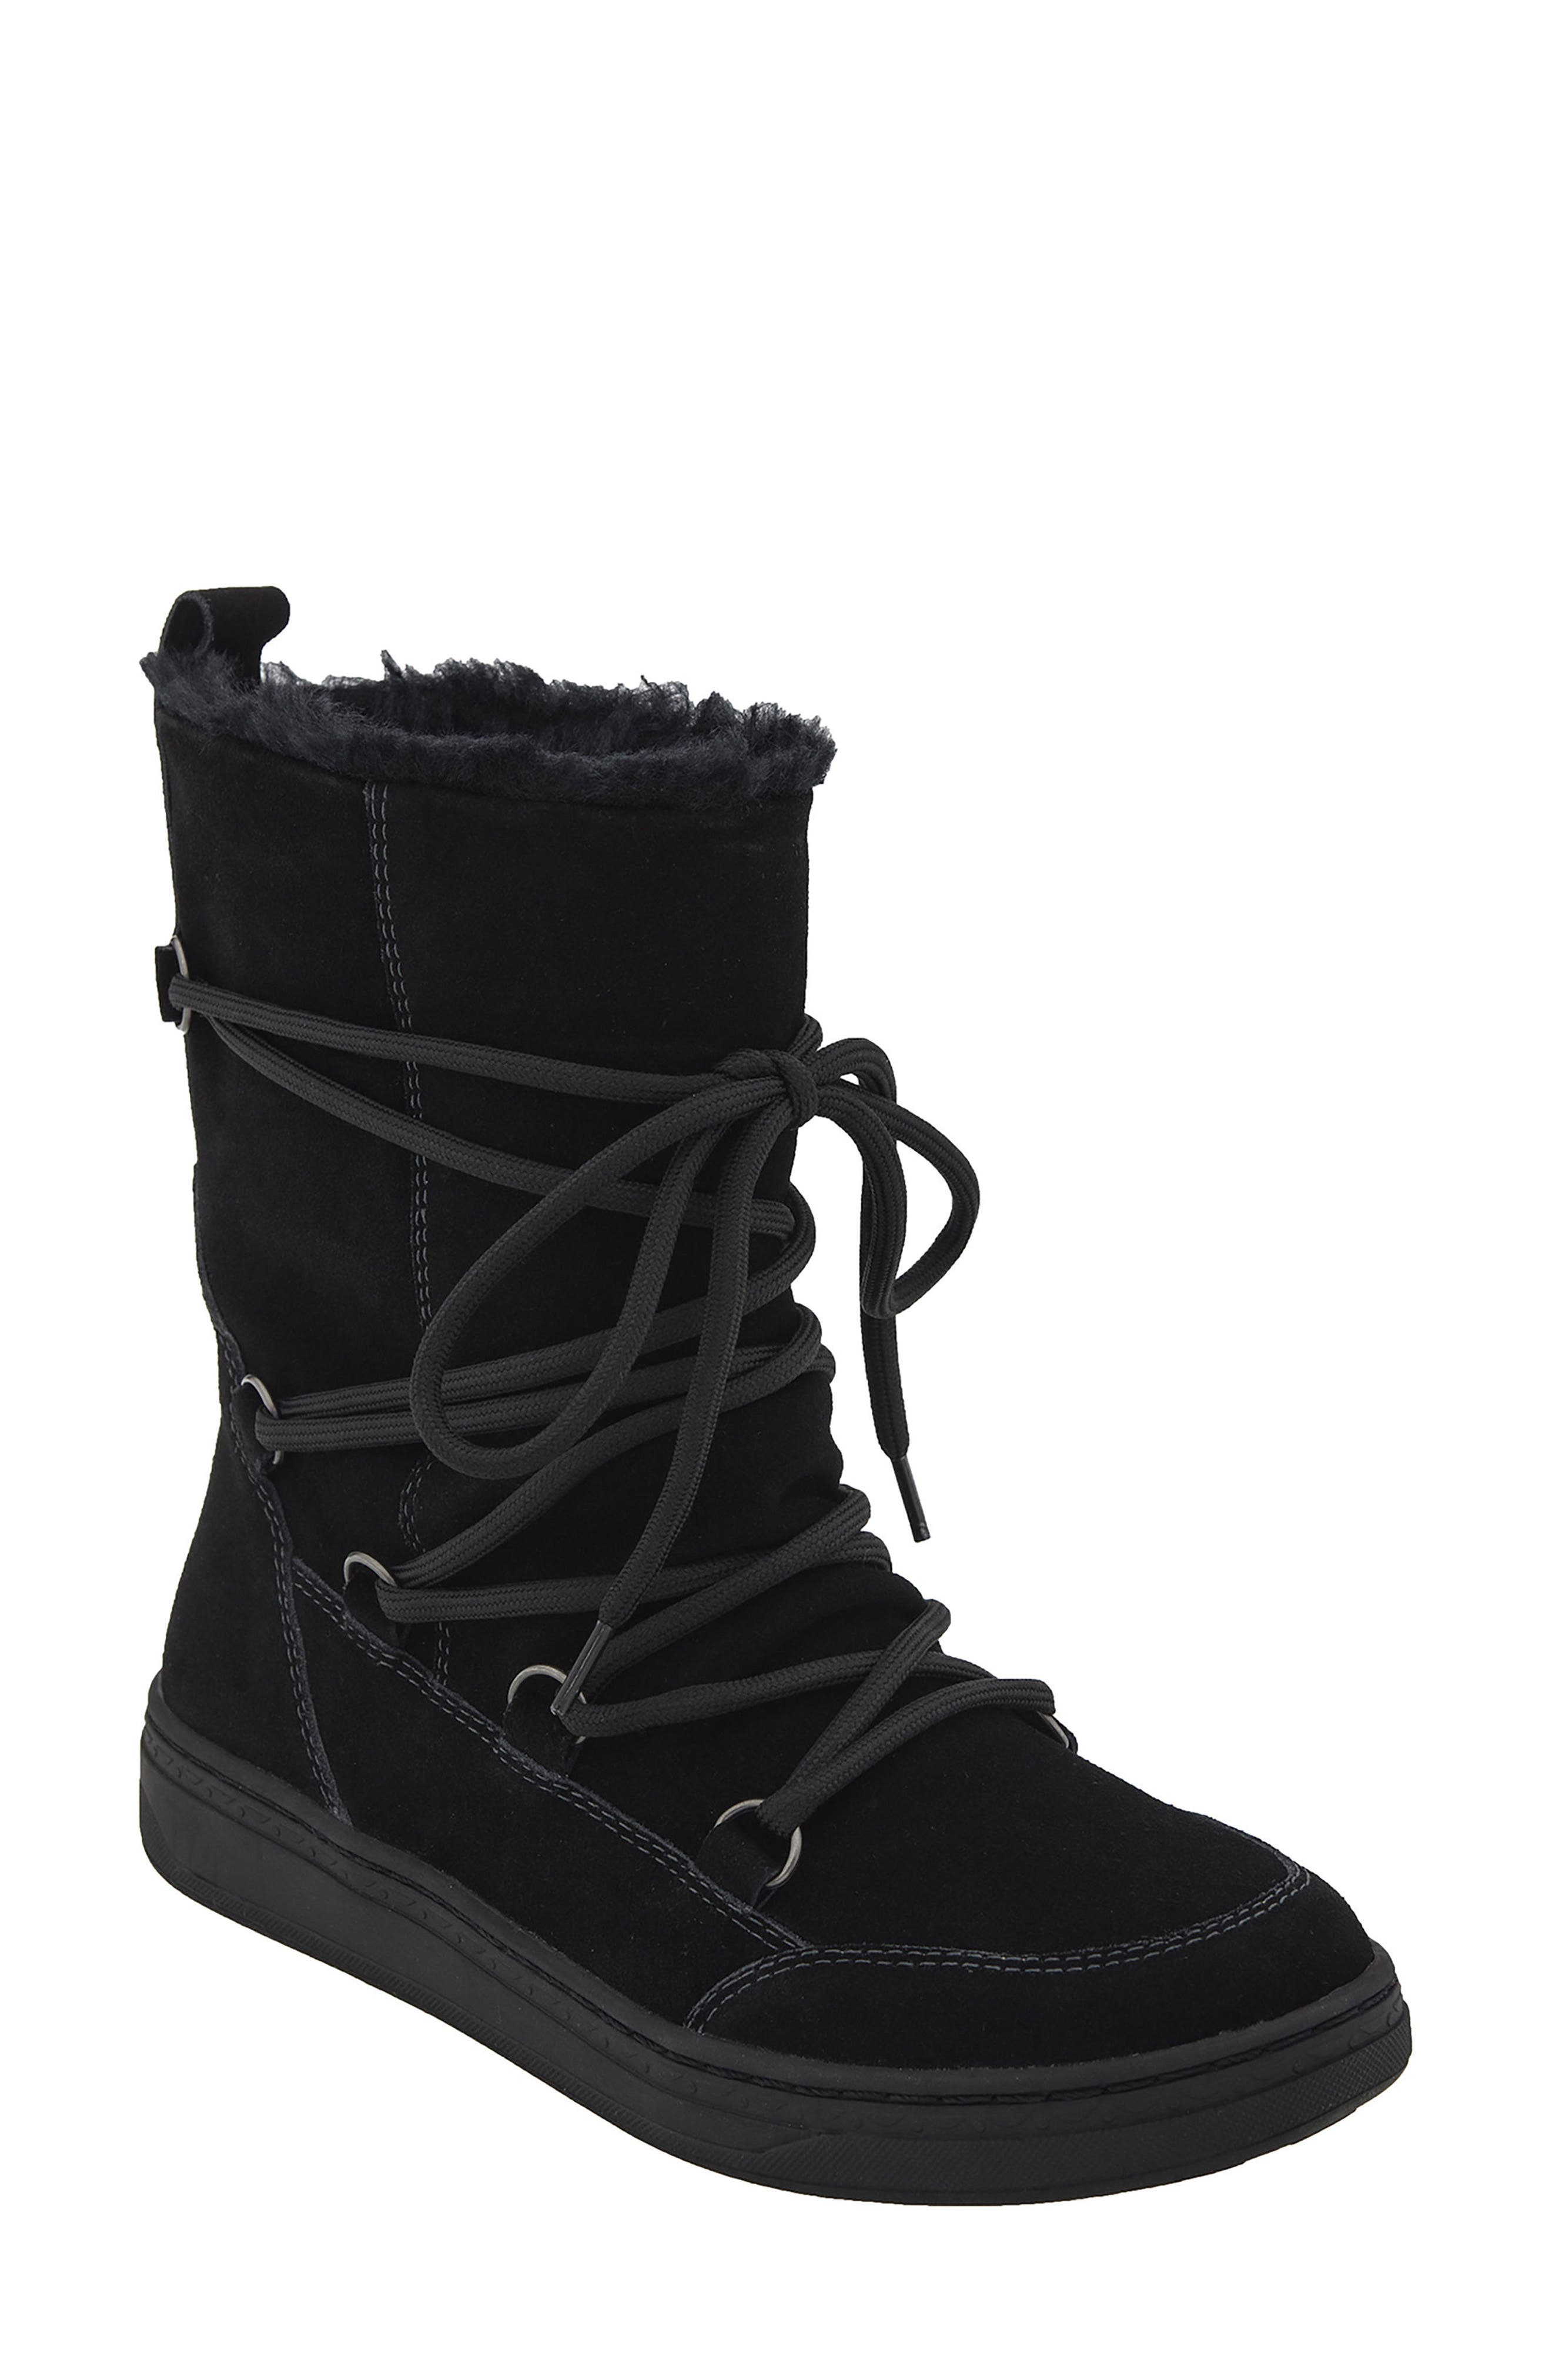 Alternate Image 1 Selected - Earth® Zodiac Water Resistant Boot (Women)